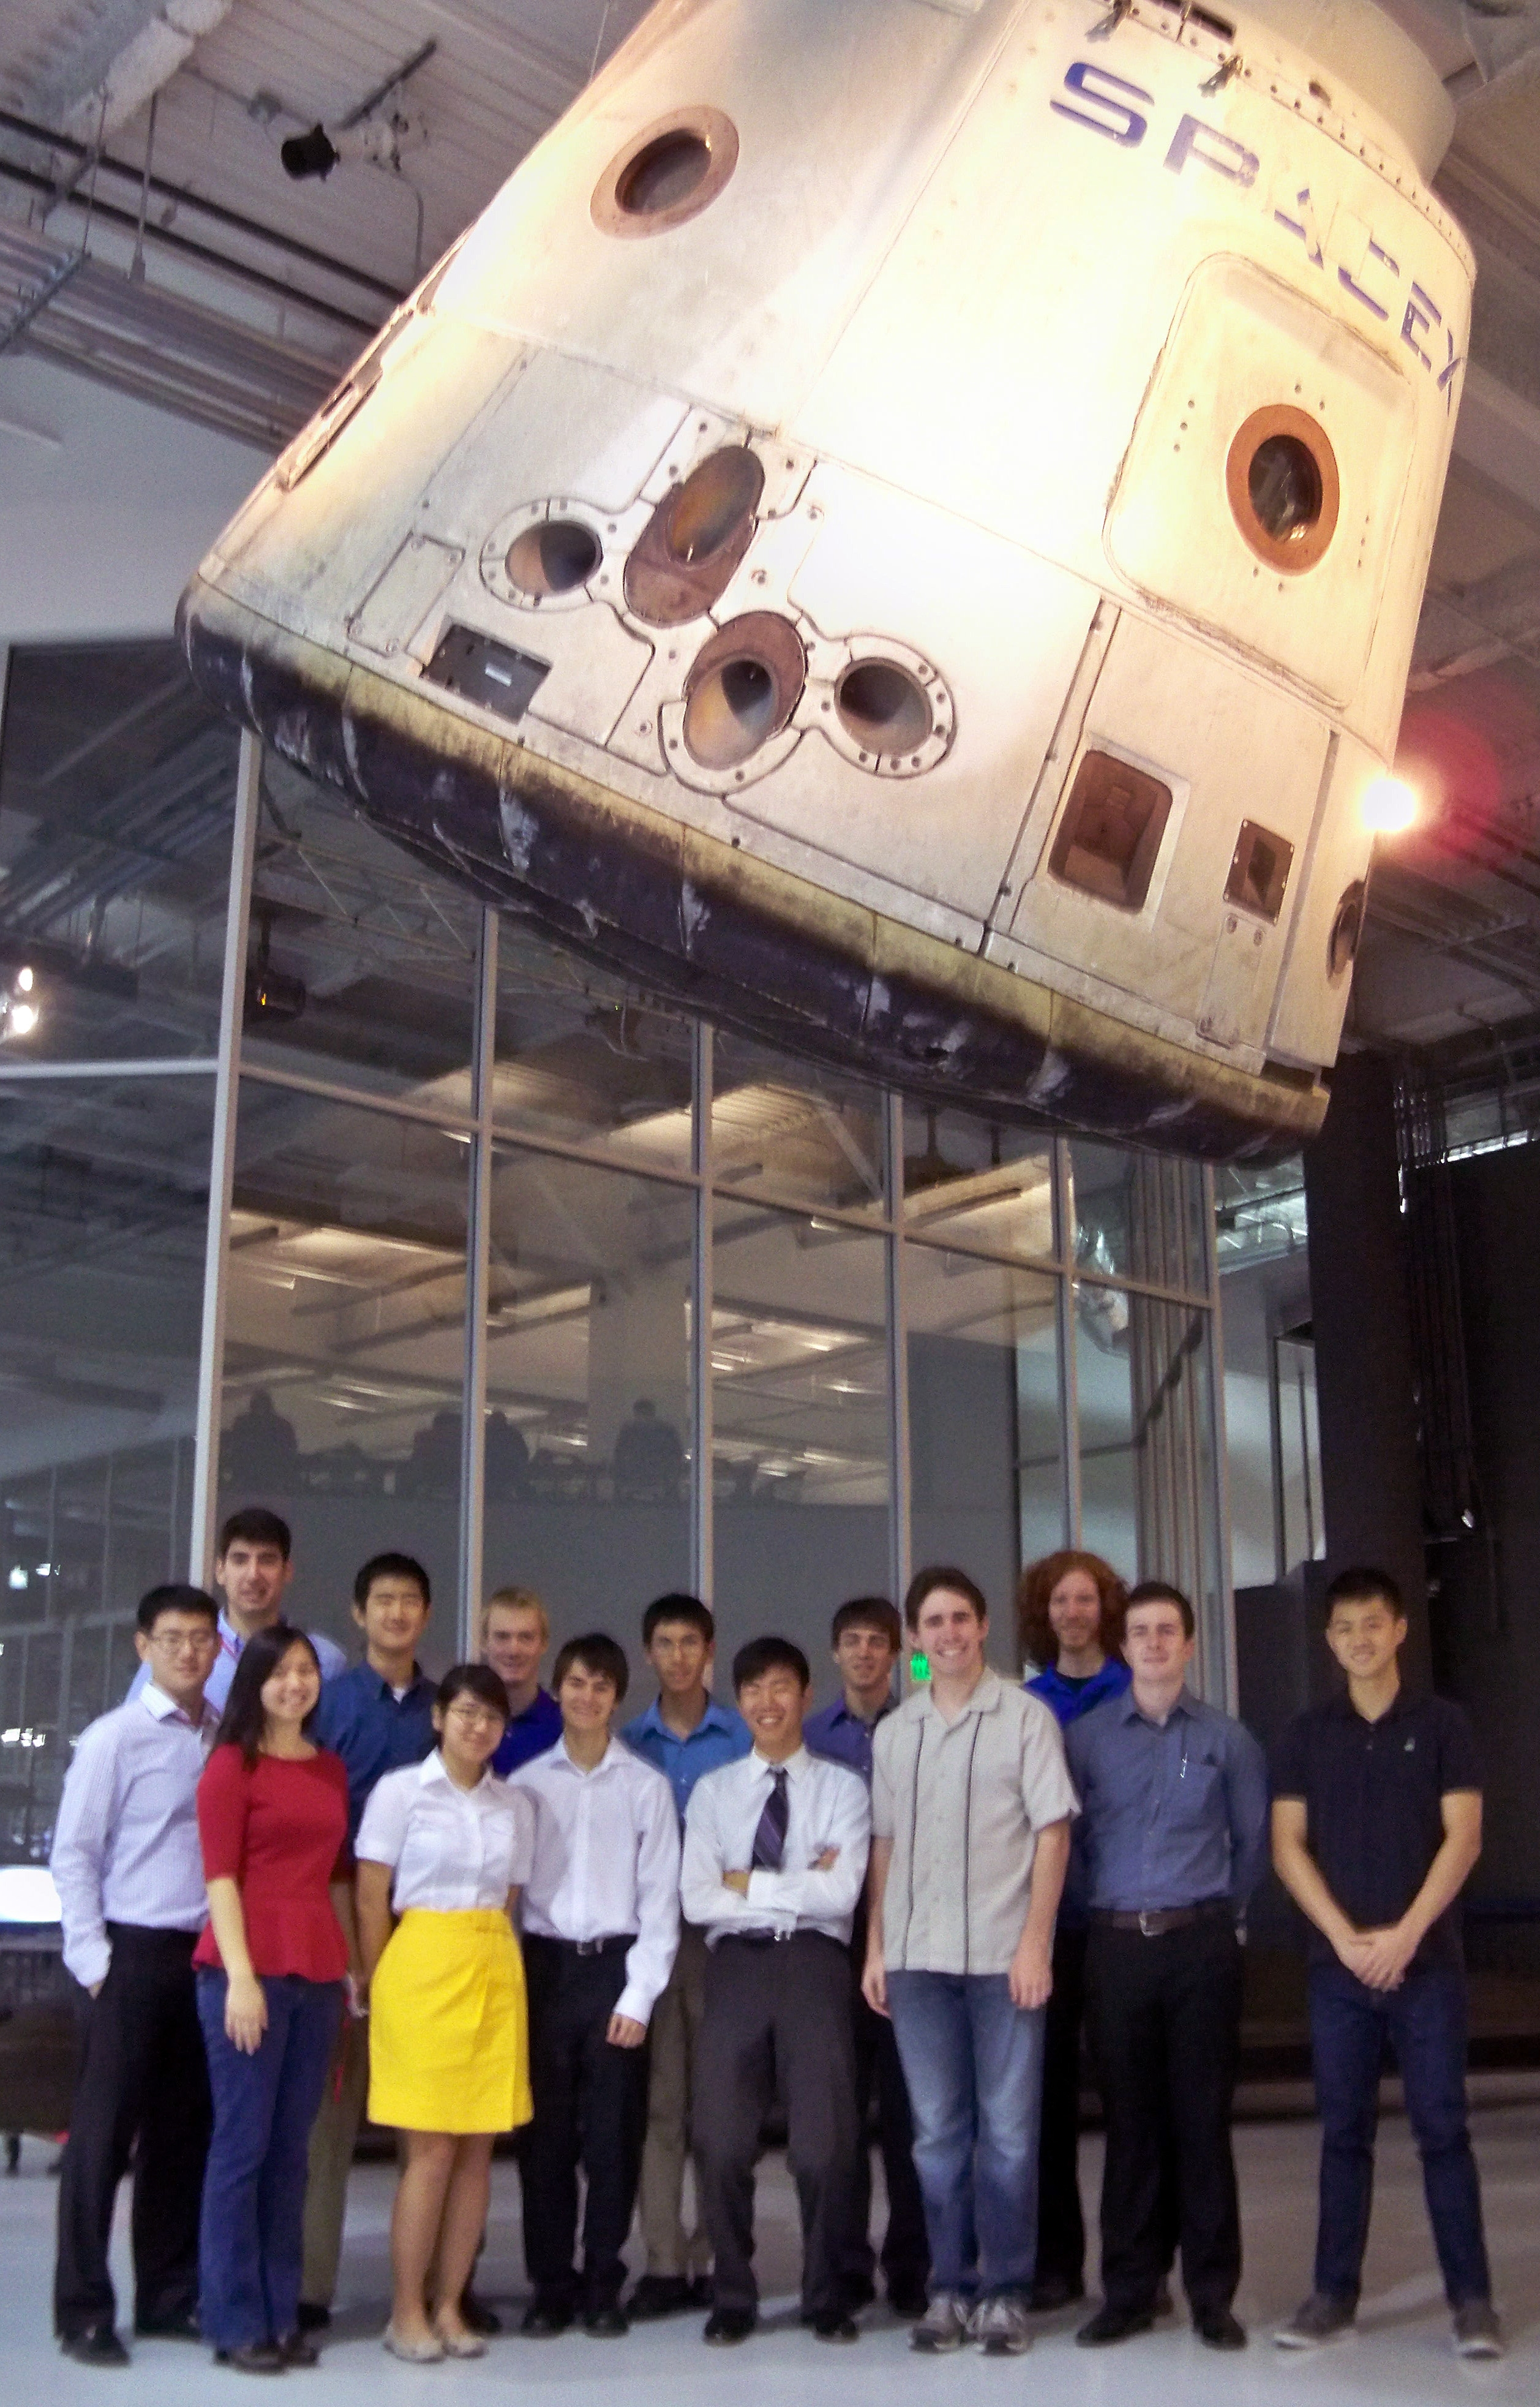 Students tand under SpaceX capsule.